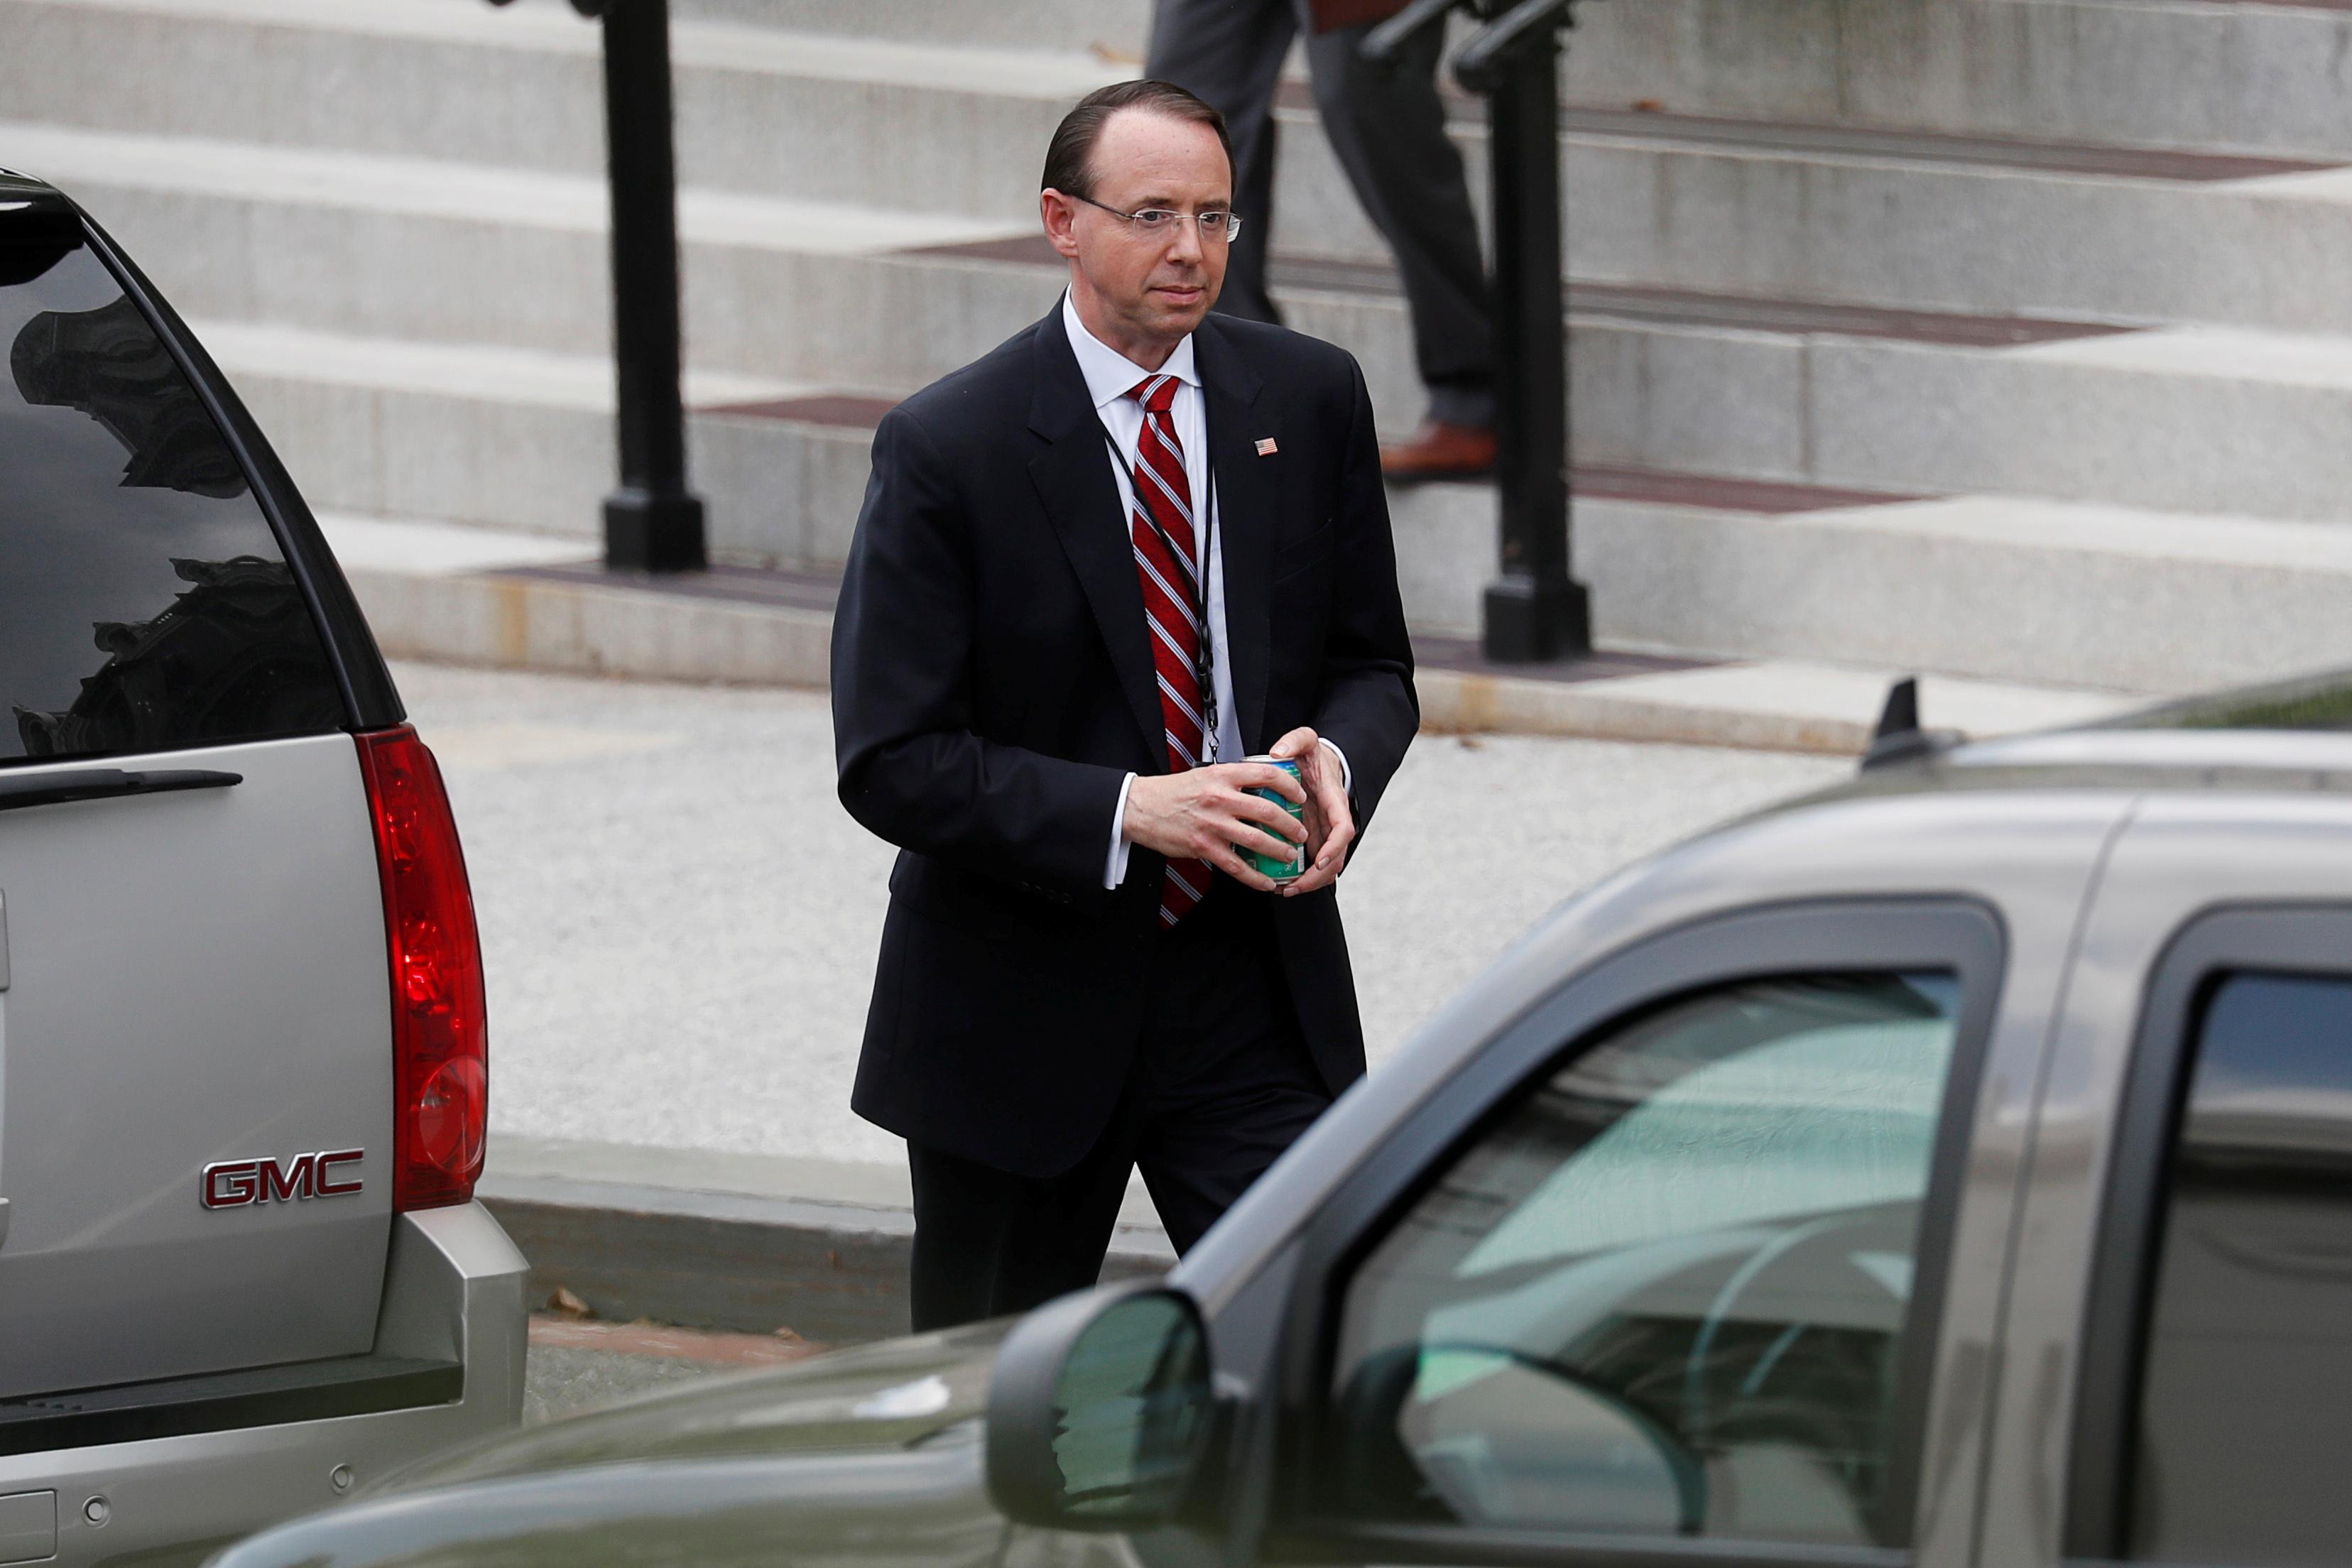 U.S. Deputy Attorney General Rod Rosenstein departs the West Wing of the White House after a meeting on FBI investigations into the 2016 Trump presidential campaign with U.S. President Donald Trump at the White House in Washington, U.S., May 21, 2018. Leah Millis